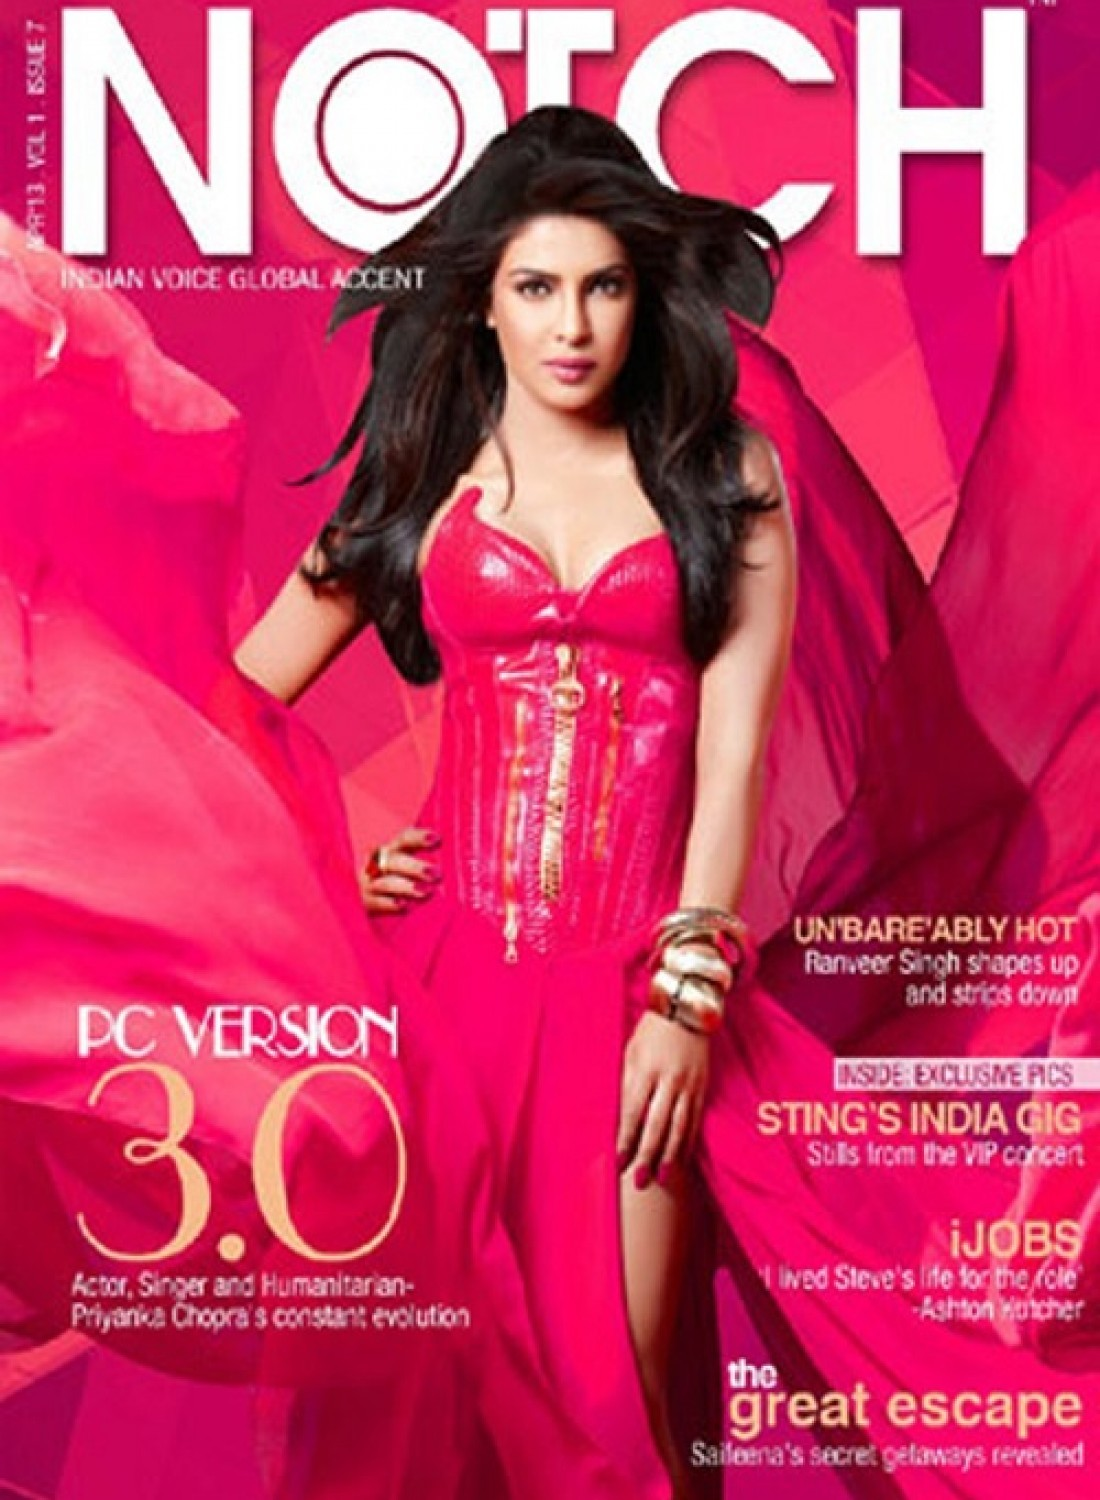 Priyanka Chopra April 2013 Notch Magazine Cover Page Photo Hot Images On Rediff Pages